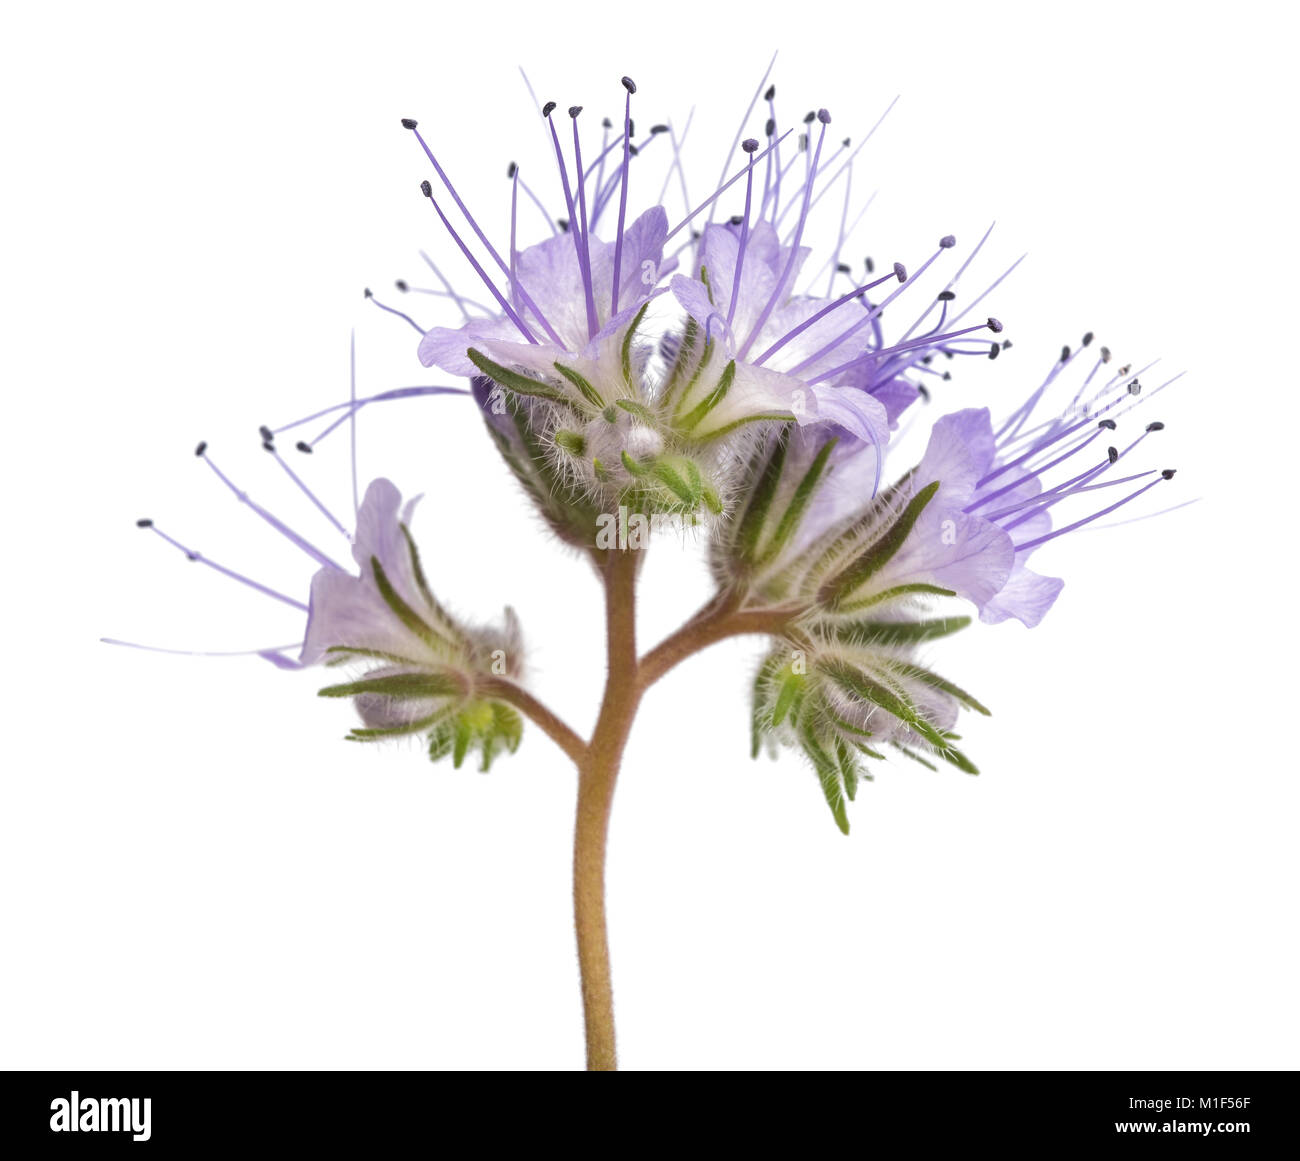 lacy phacelia, blue tansy or purple tansy isolated on white background - Stock Image